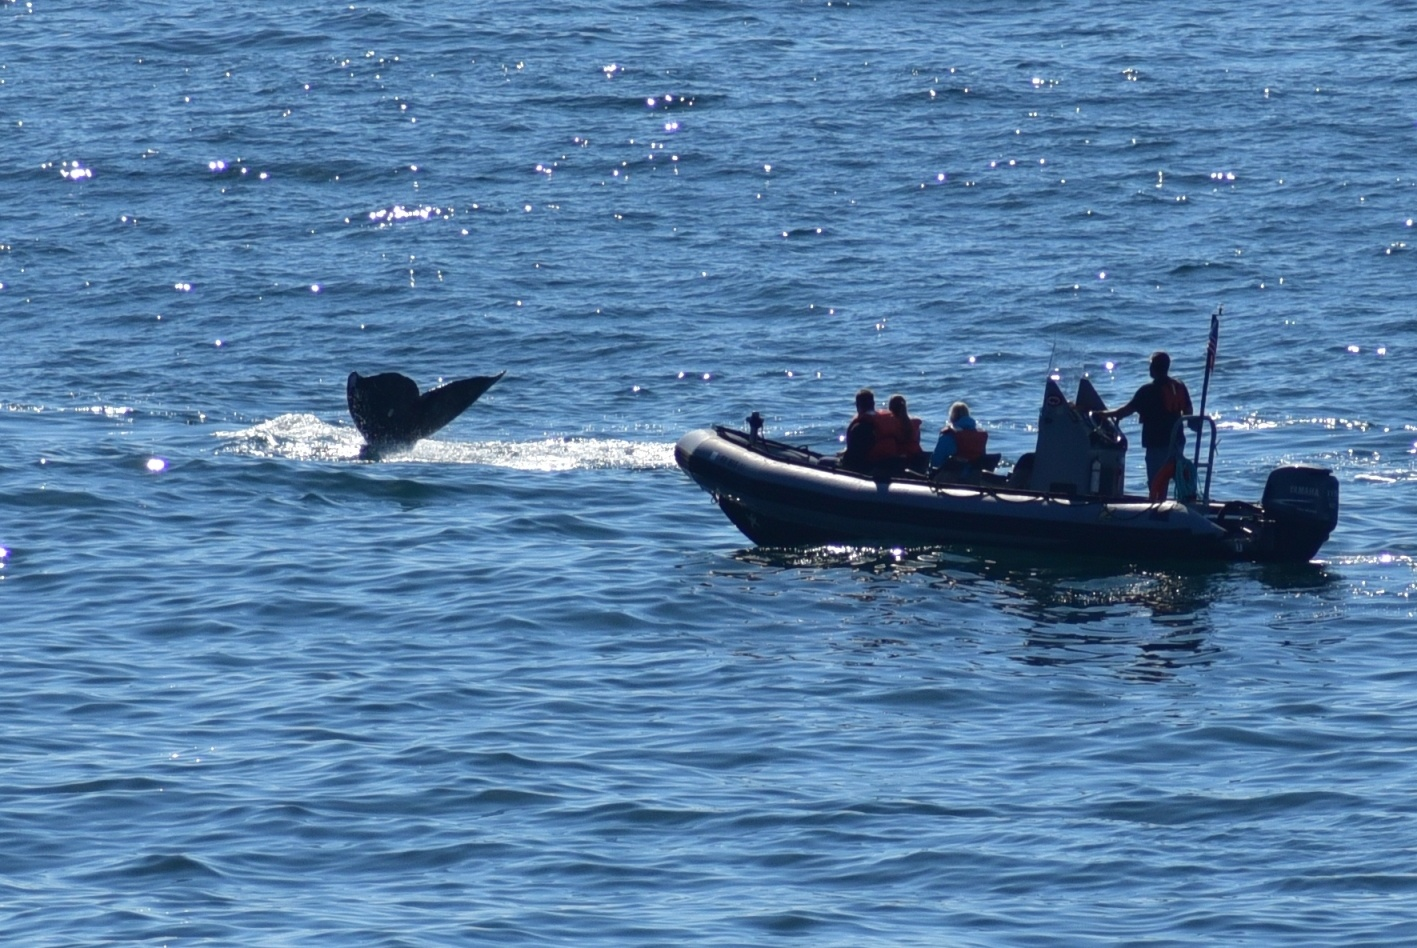 Whale Watching on the Central Oregon Coast by Michael O